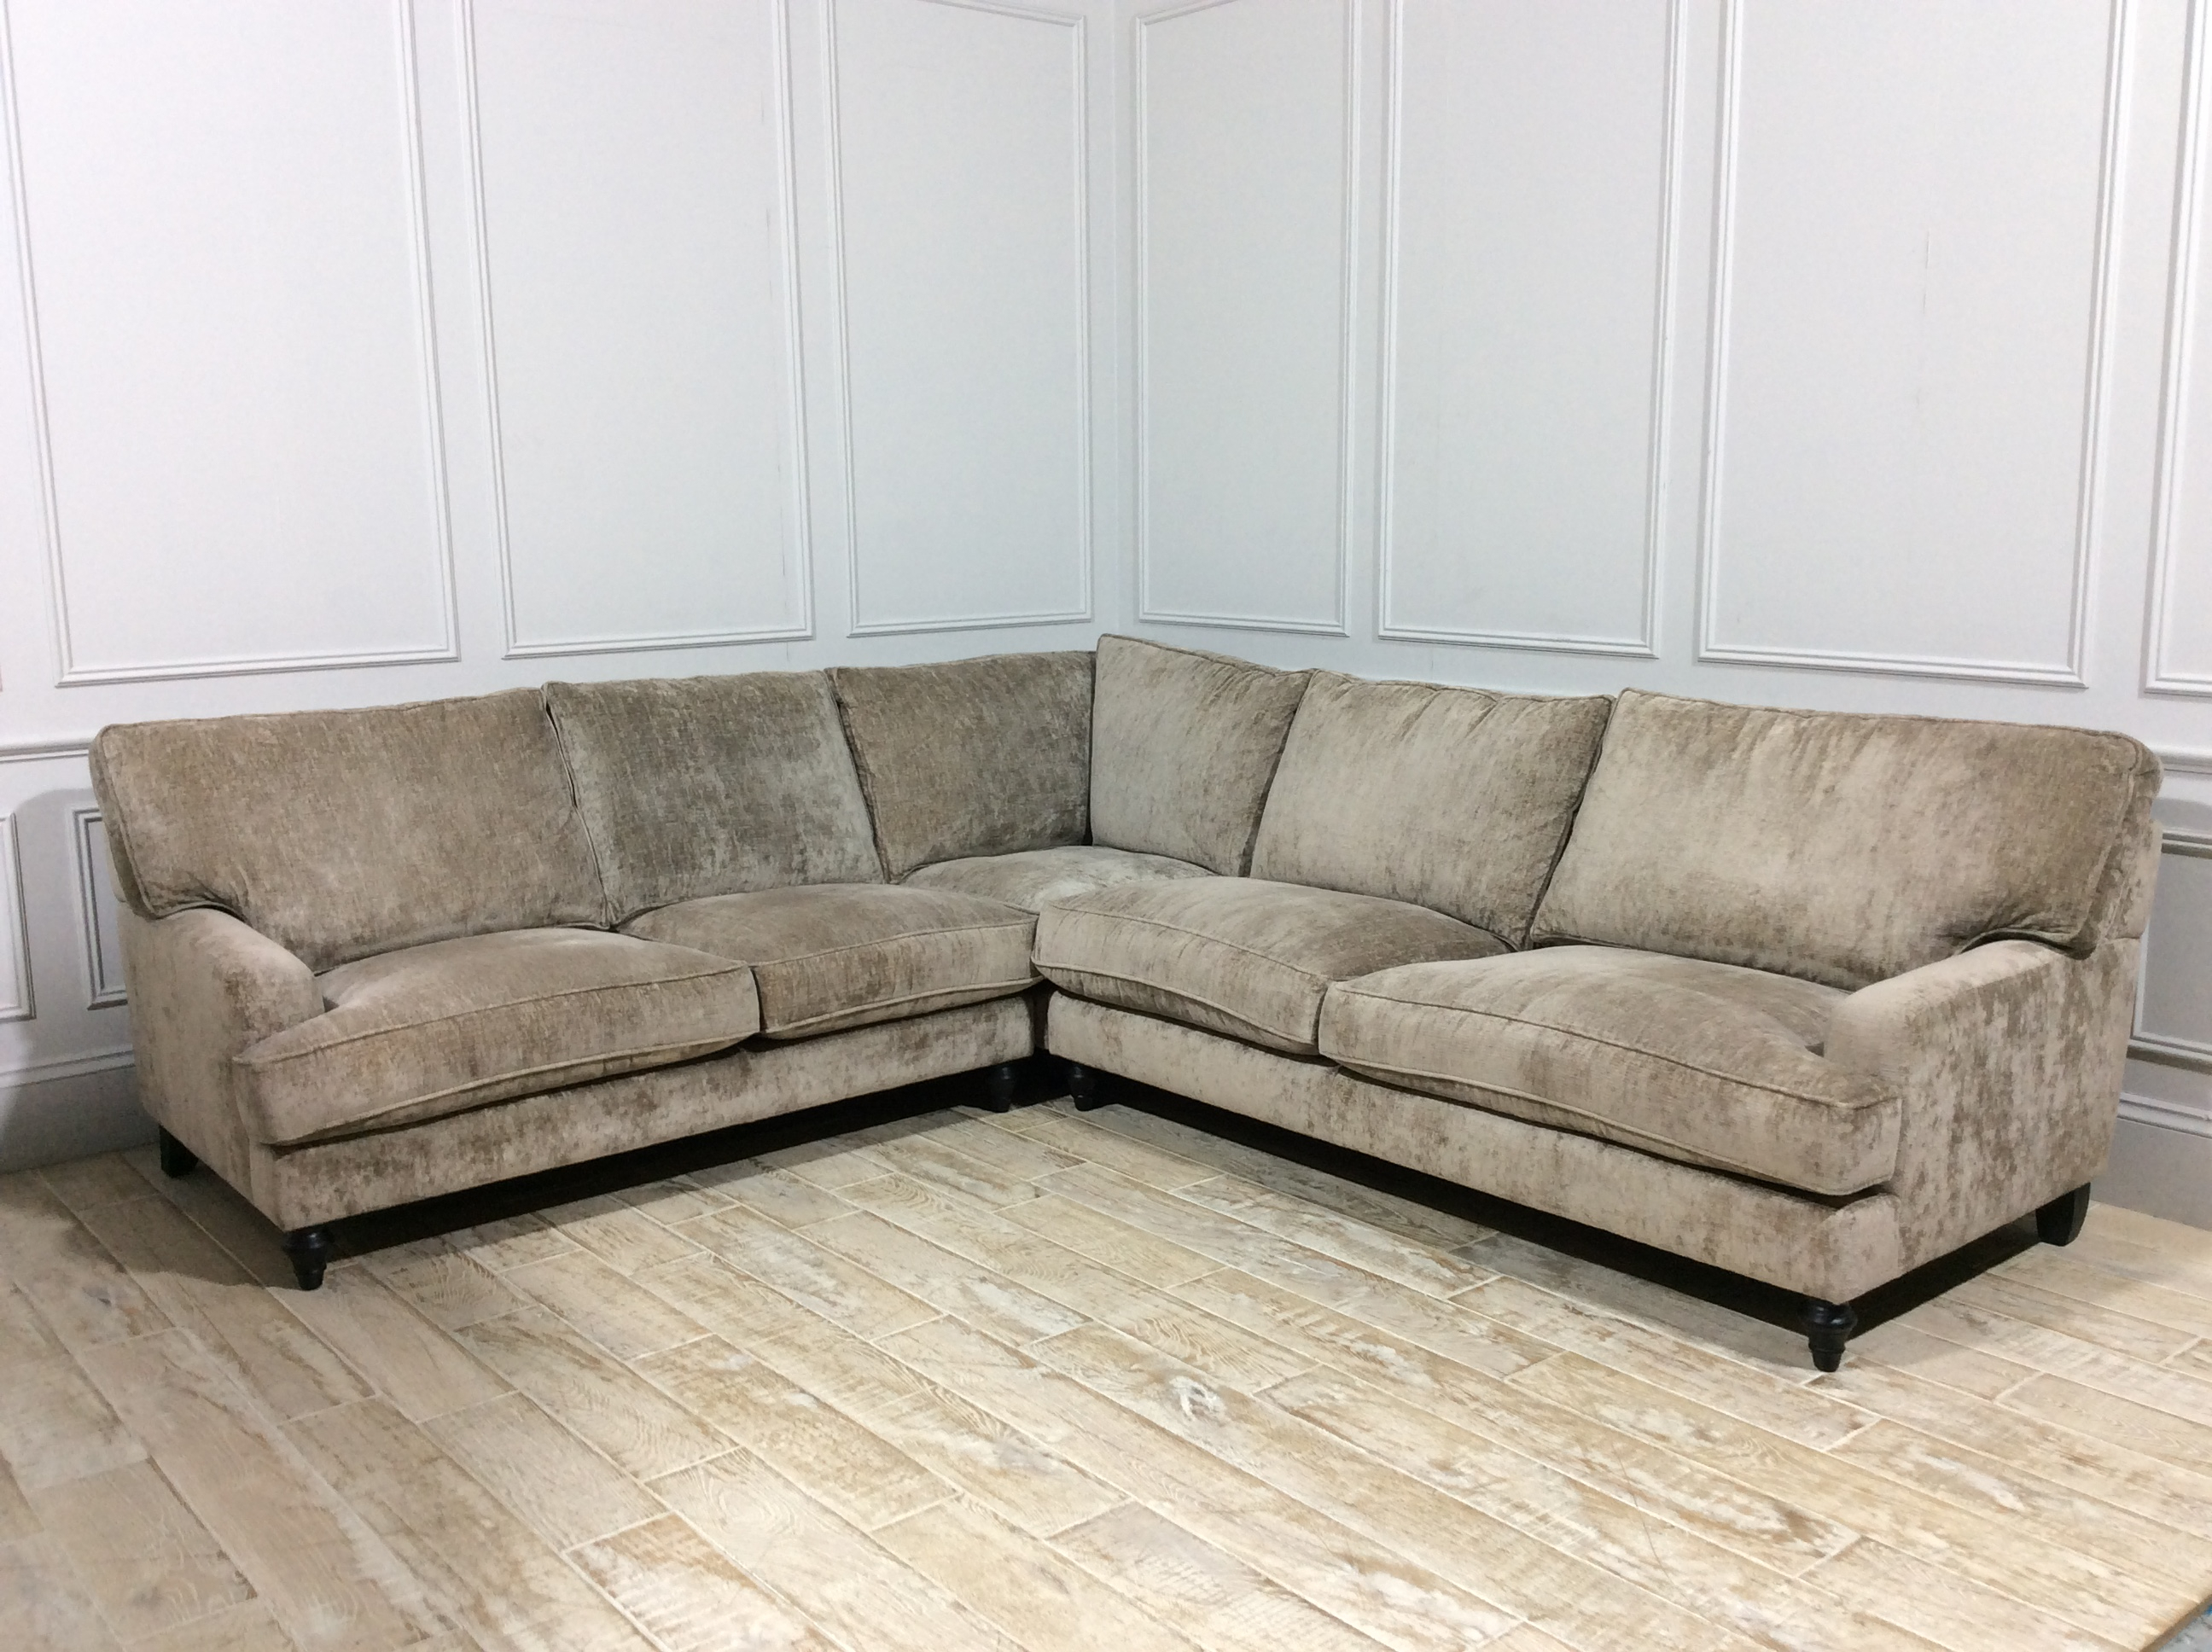 Whinfell Large Corner Sofa in Traviata Mink